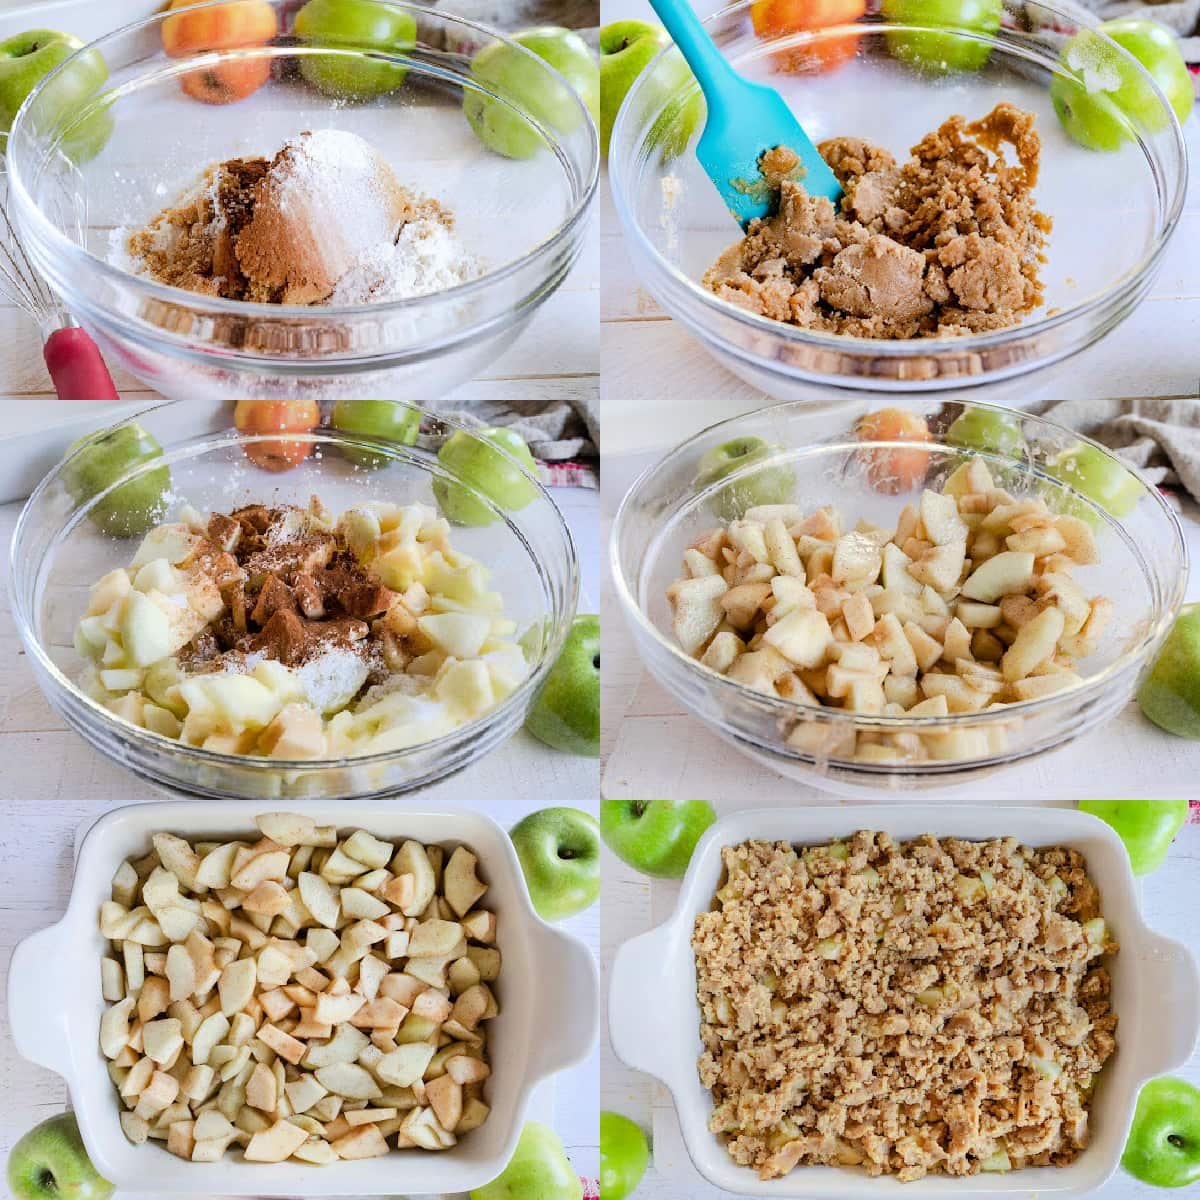 six image collage showing step by step how to make apple crumble.